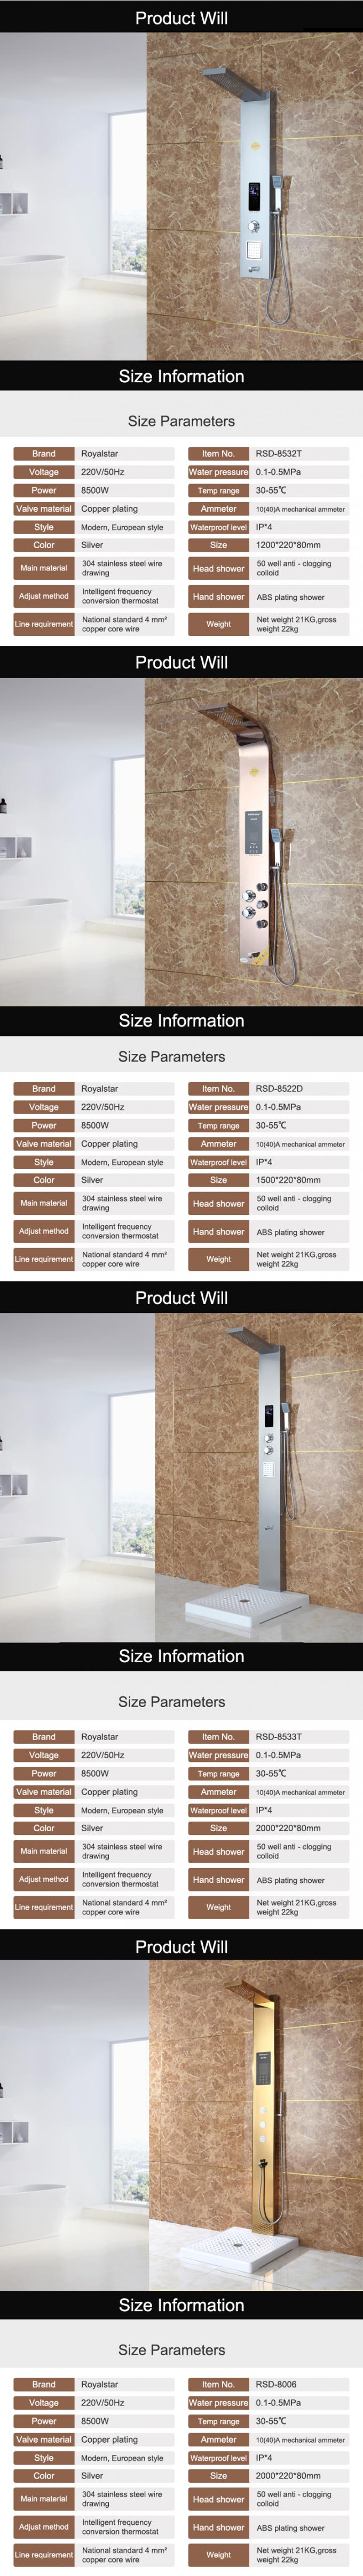 Massage Spray Bathroom Shower Panels 8 - 10μm Nickel Plating Thickness